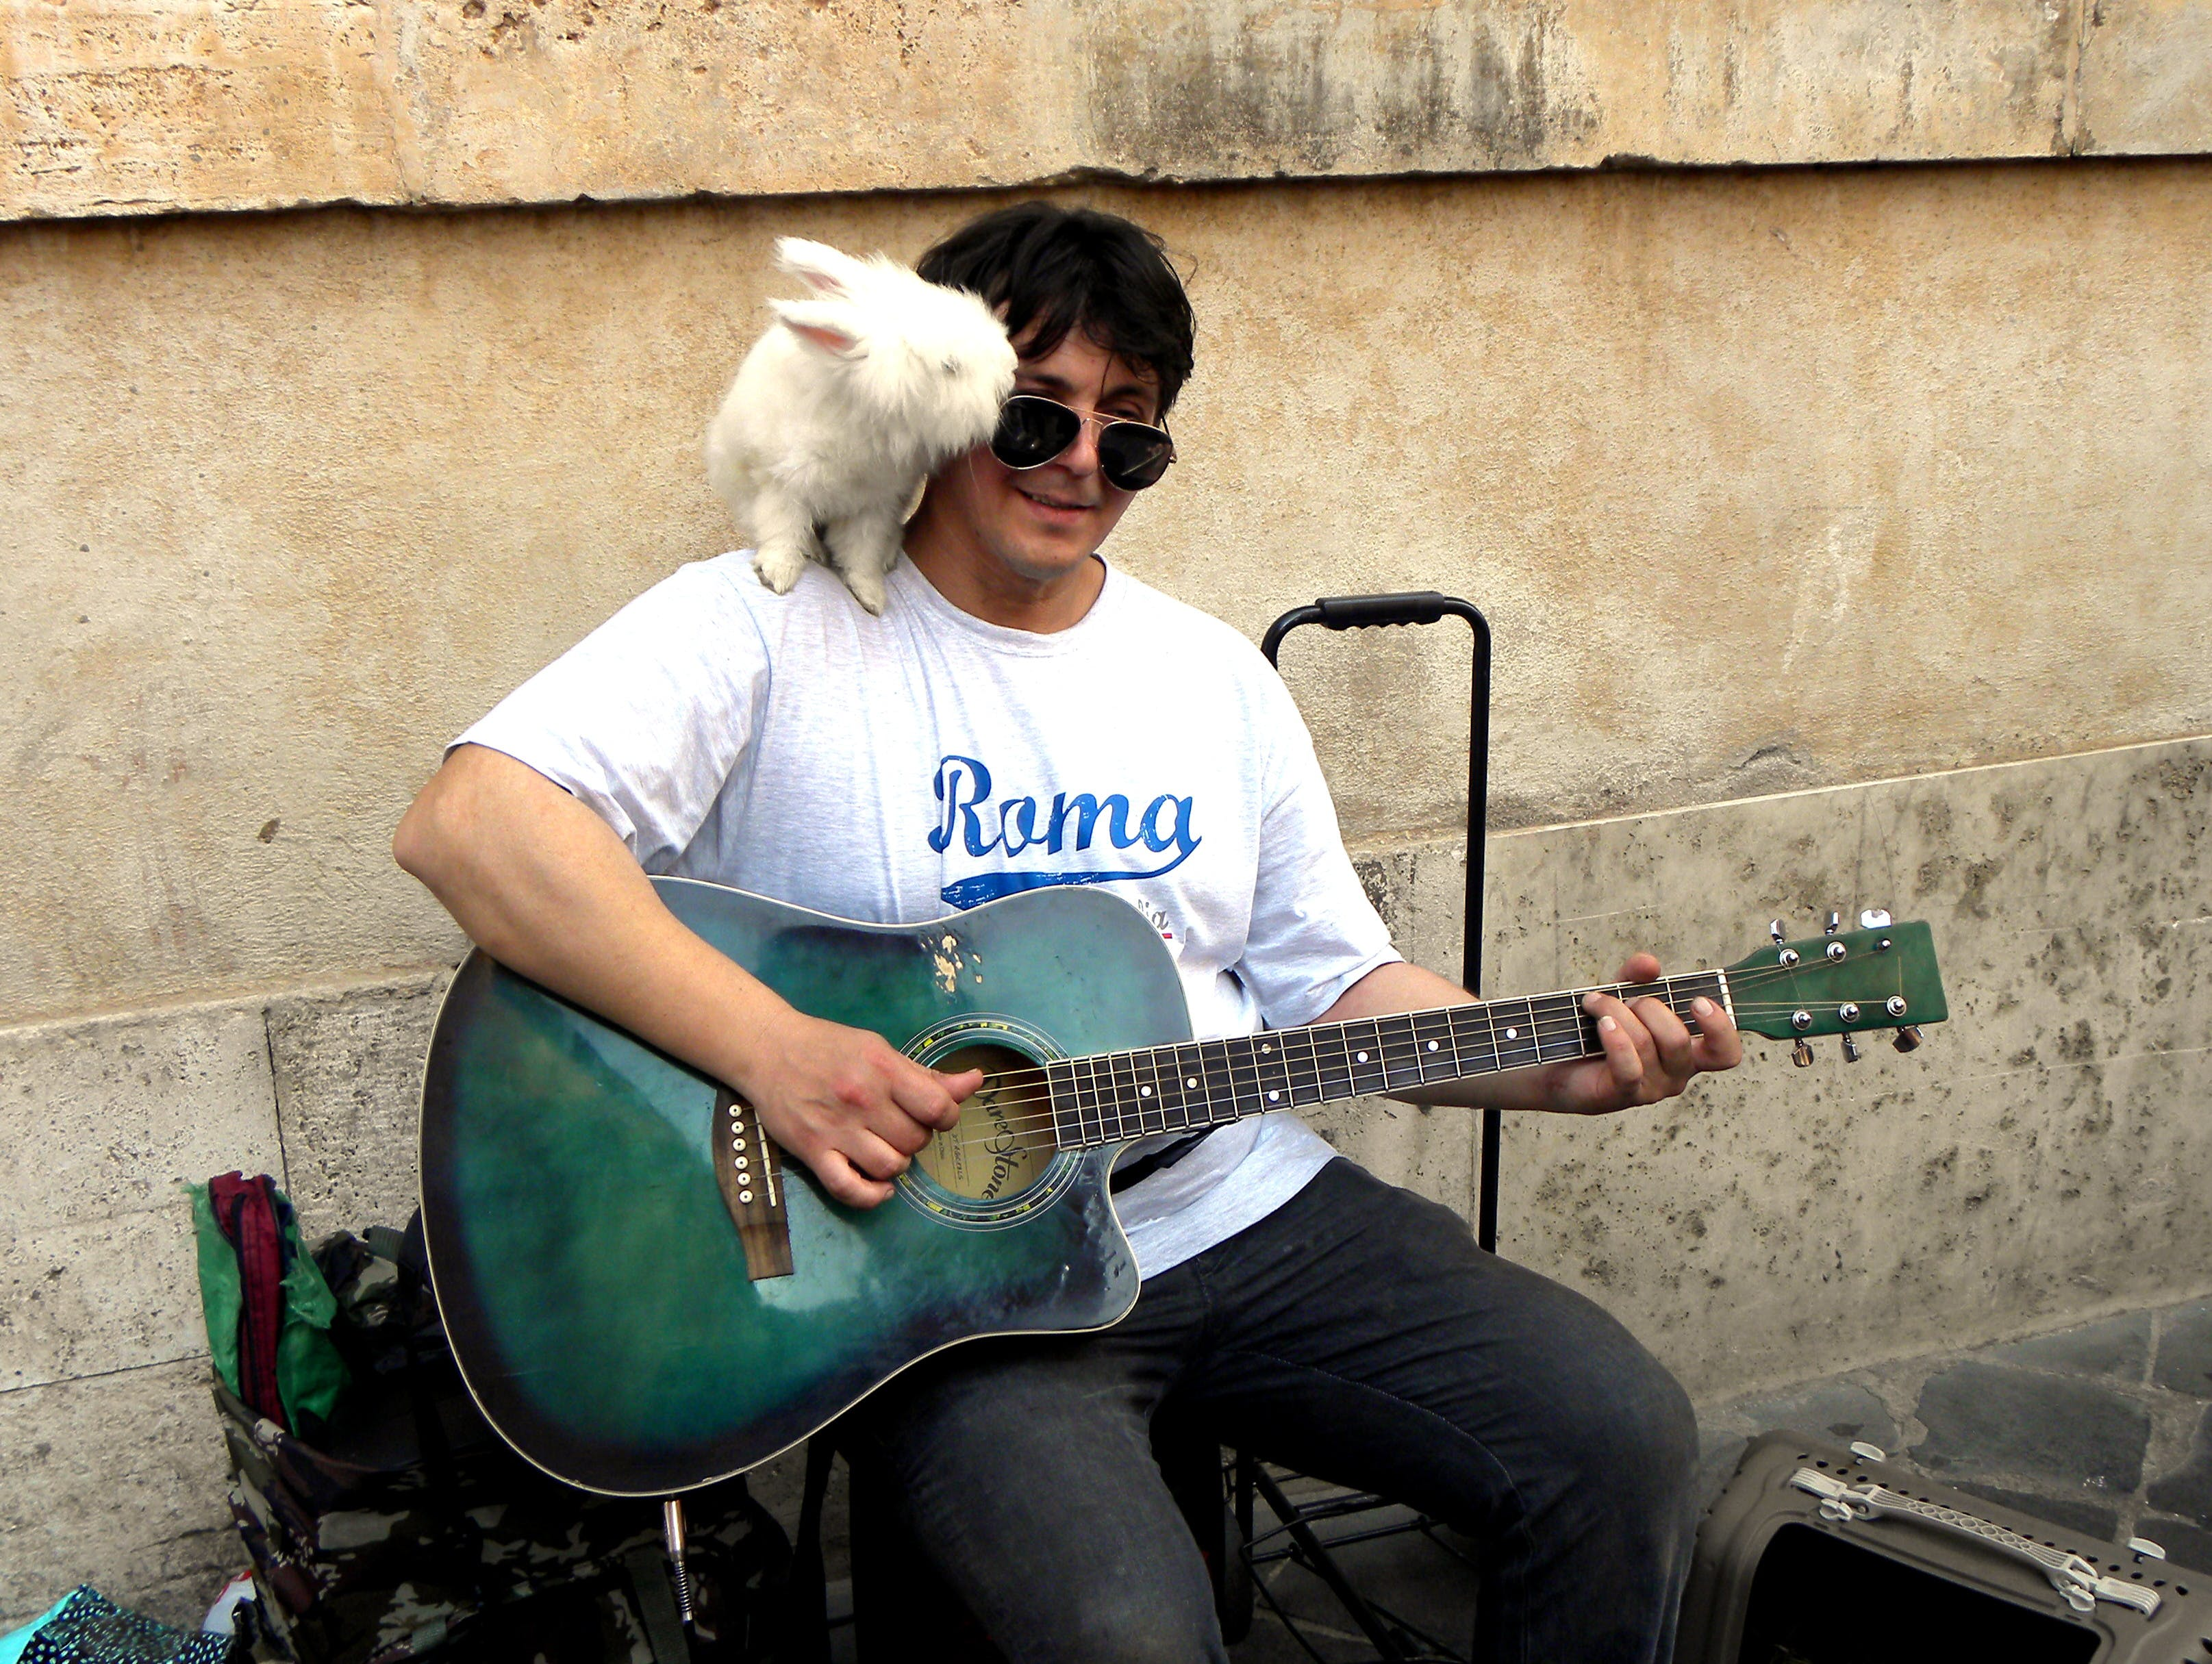 Free stock photo of rome, street musician, street musician with rabbit